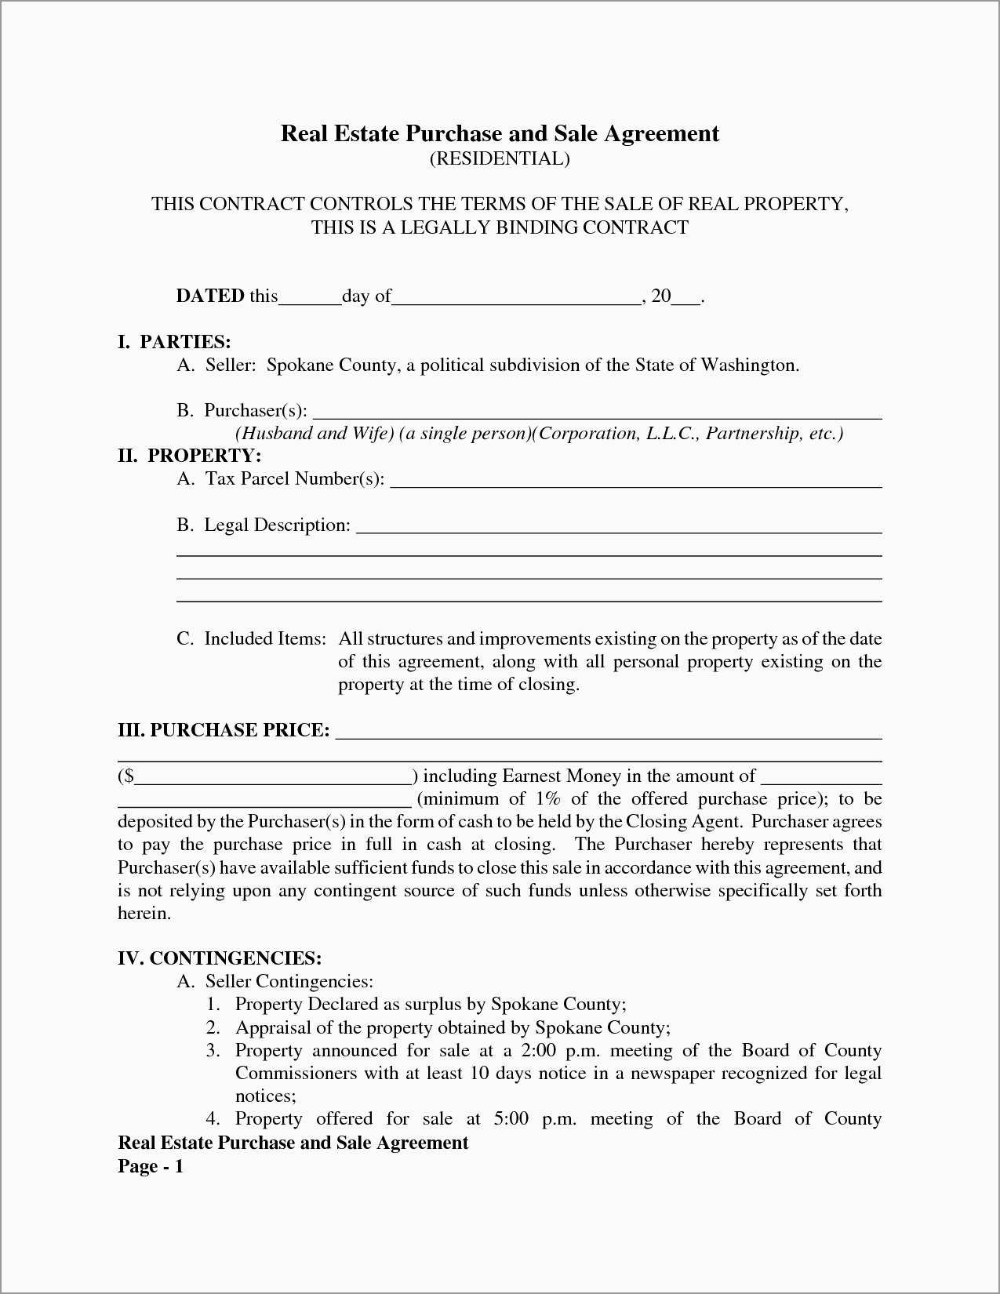 Fresh Purchase Agreement Real Estate Template Free Best Of Template For Free Simple Real Estate P Real Estate Contract Purchase Agreement Real Estate Templates